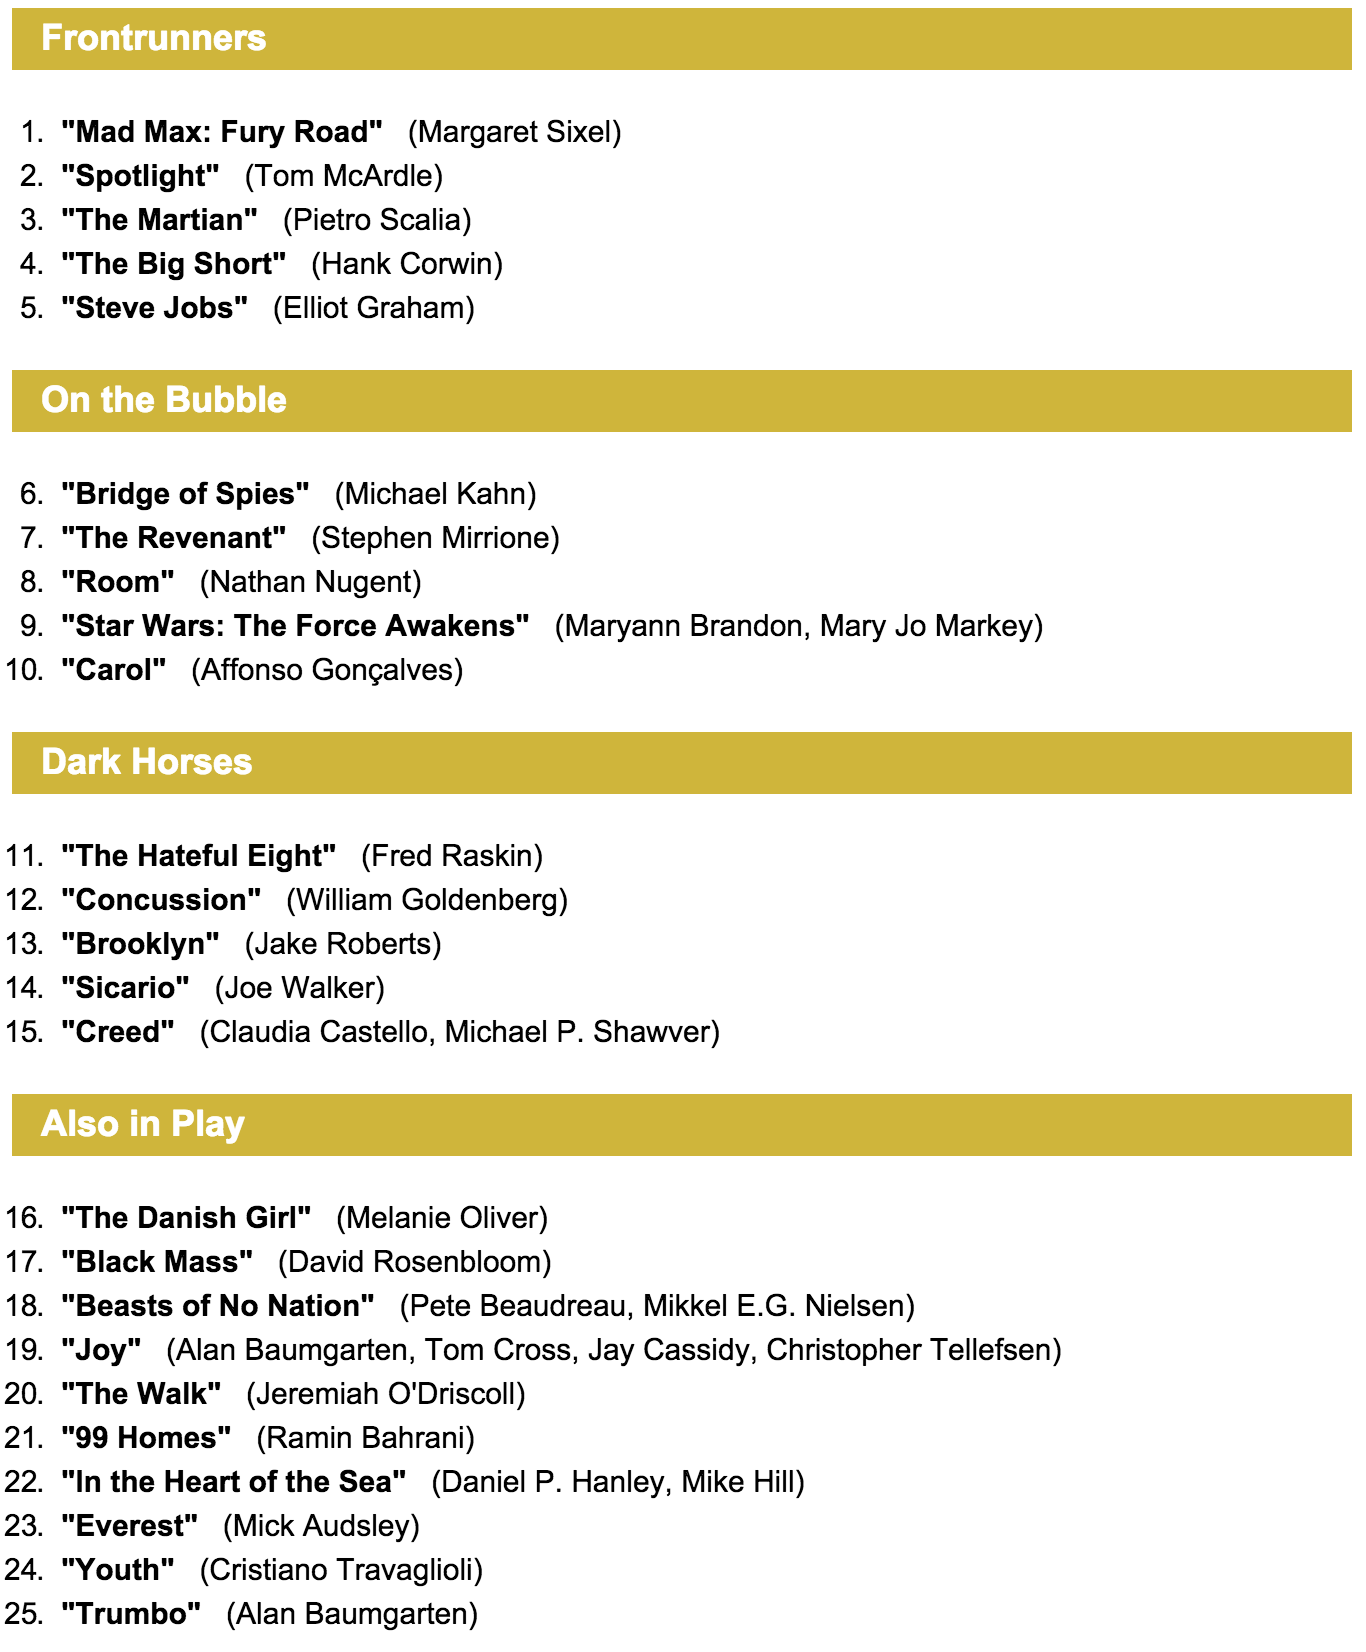 VARIETY BEST EDITING OSCAR PREDICTIONS - Your opinion? 11